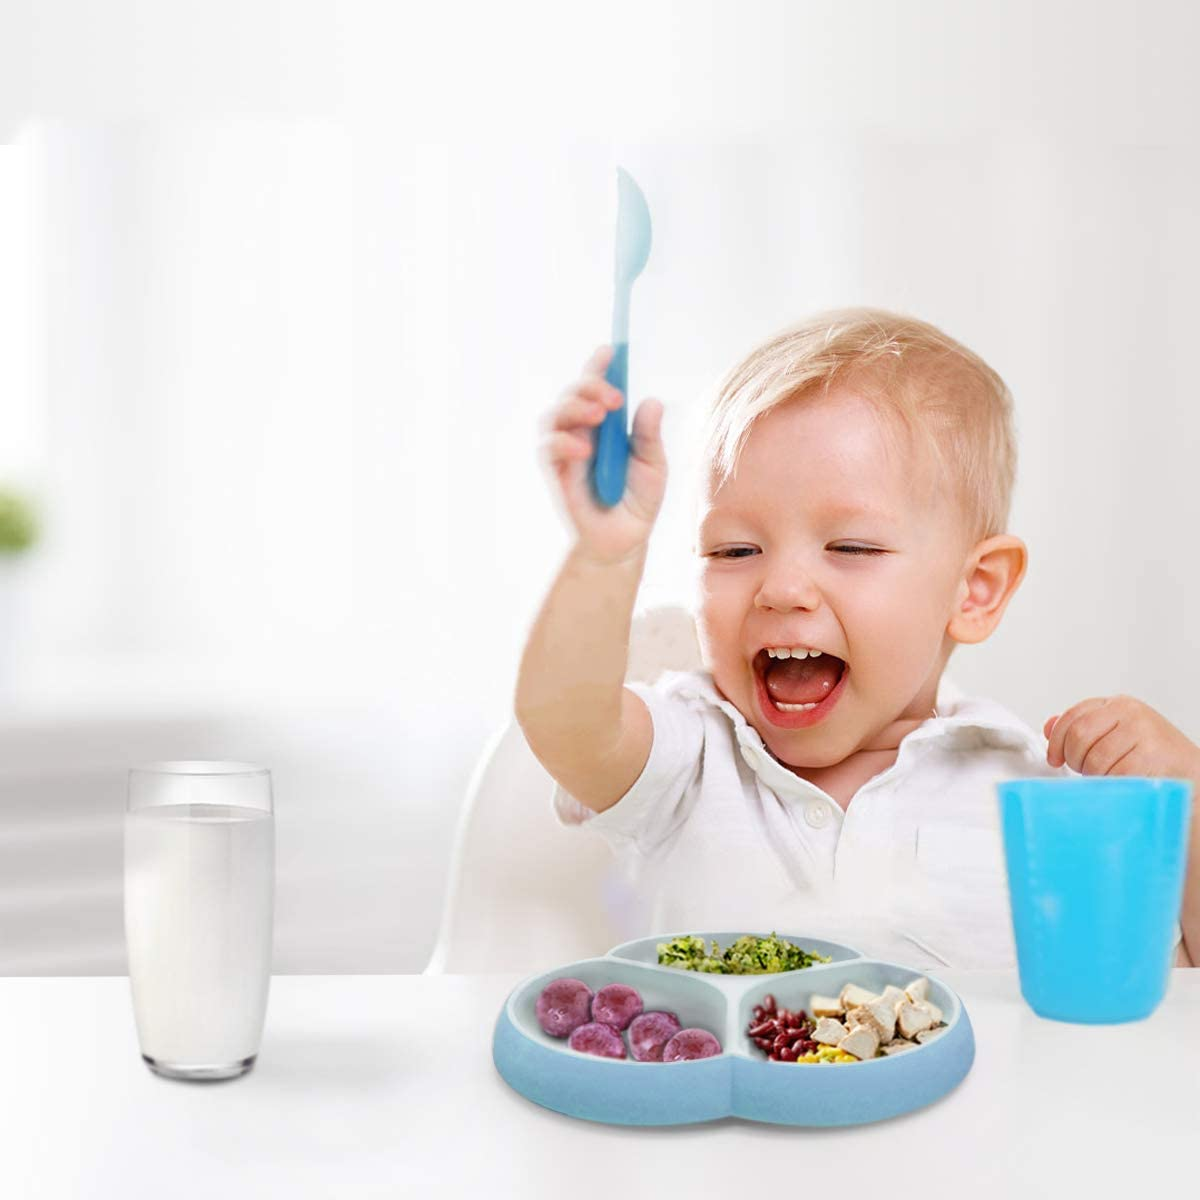 Microwave /& Dishwasher Safe Toddler Plates for Babies SILIVO Non Slip Baby Plates with Suction Toddlers and Children Kids Plates Silicone Baby Suction Plate Kids Blue//Gray